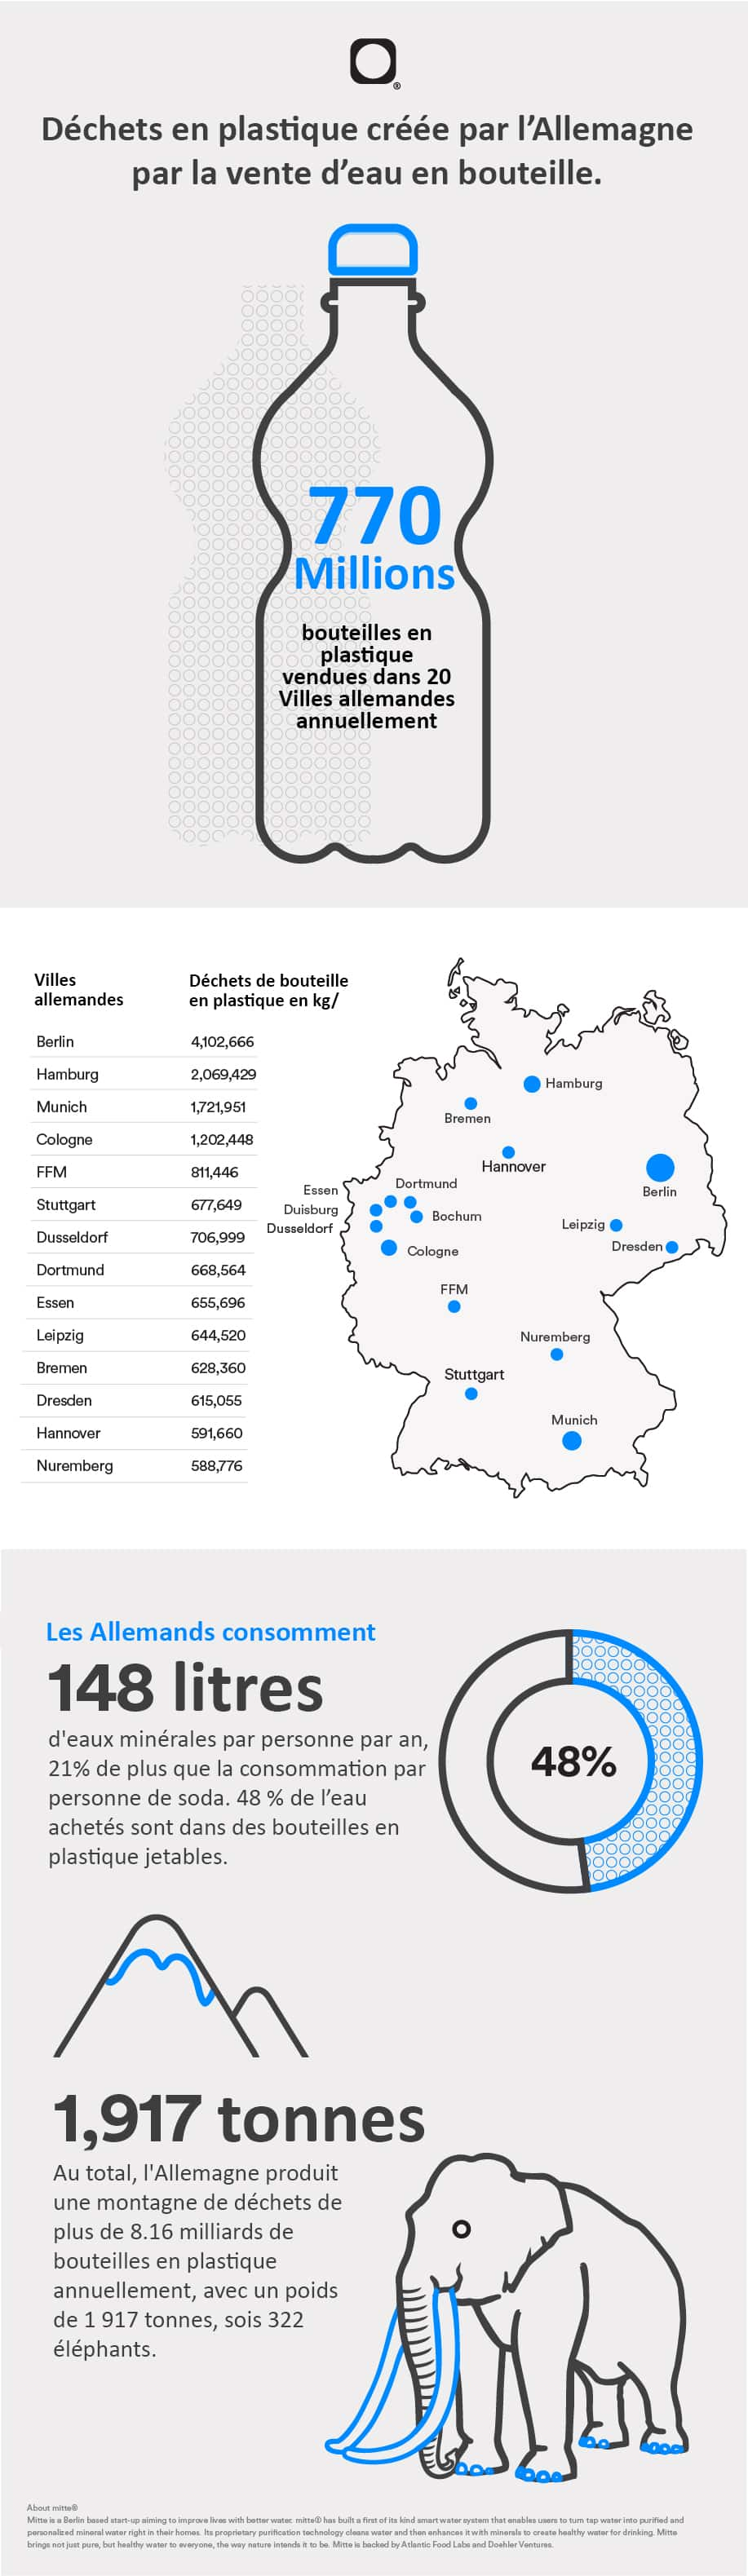 Image infographie Mitte 2